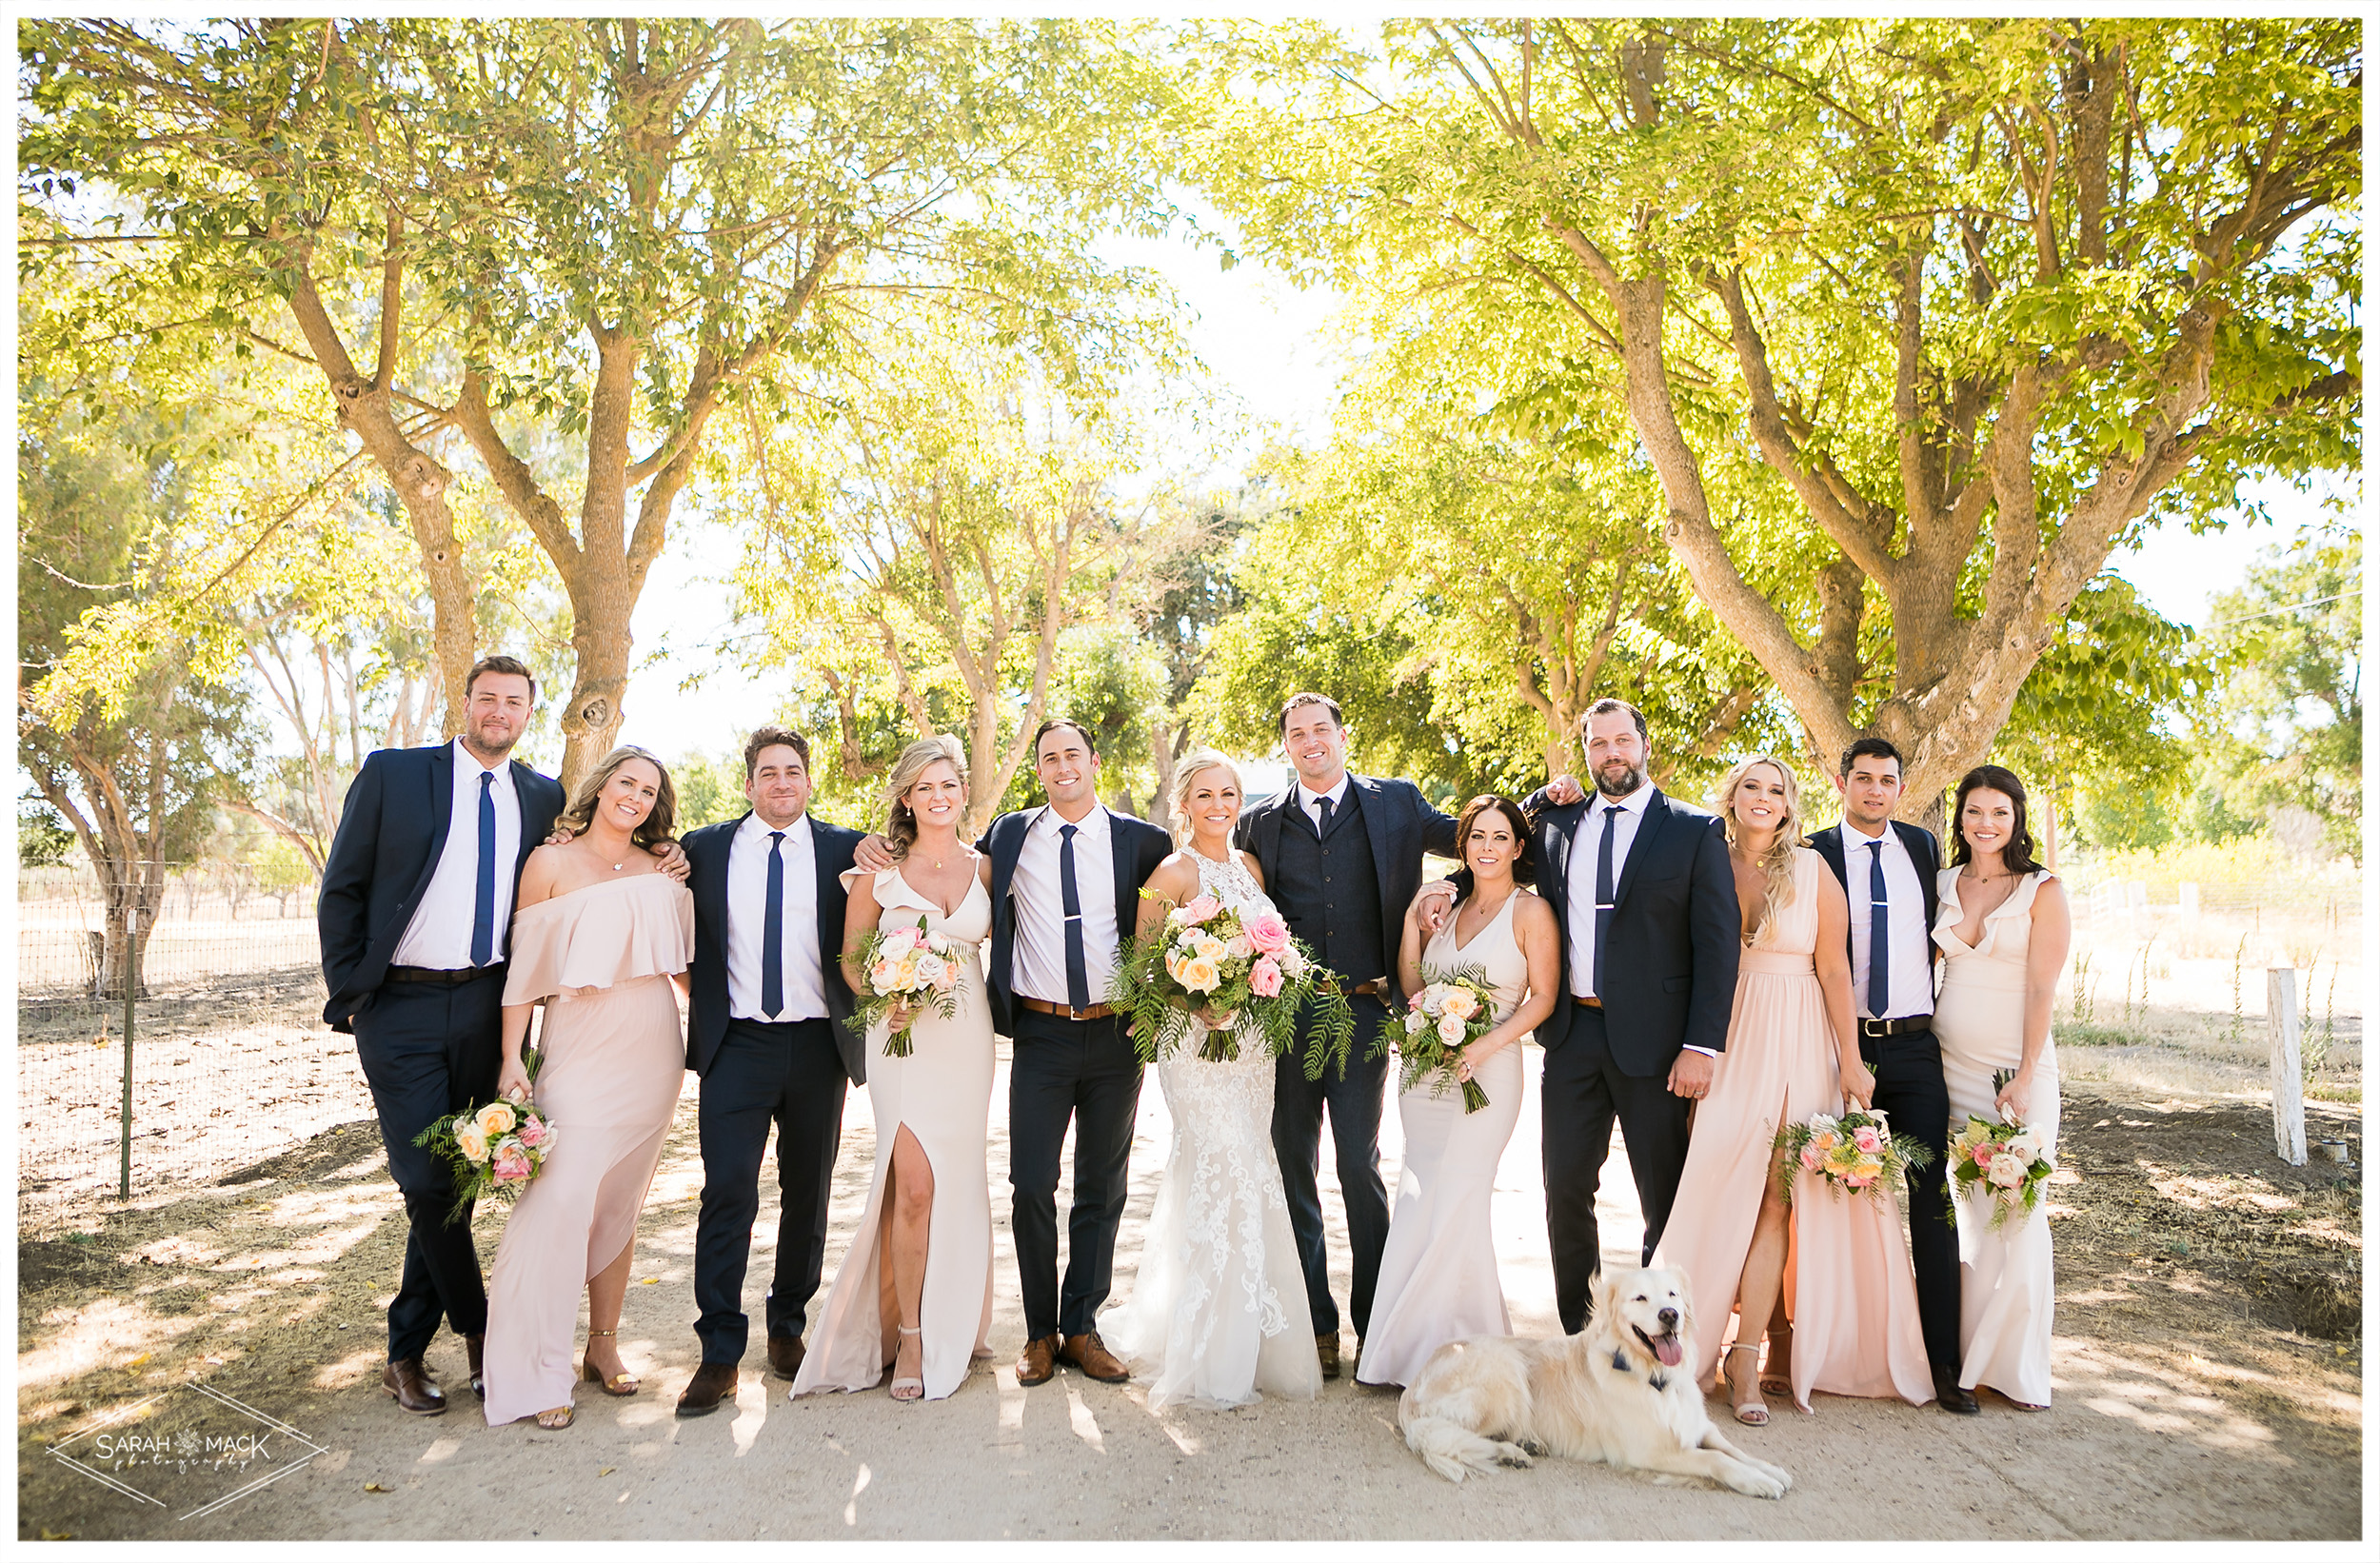 MA-Chandler-Ranch-Paso-Robles-Wedding-Photography-48.jpg